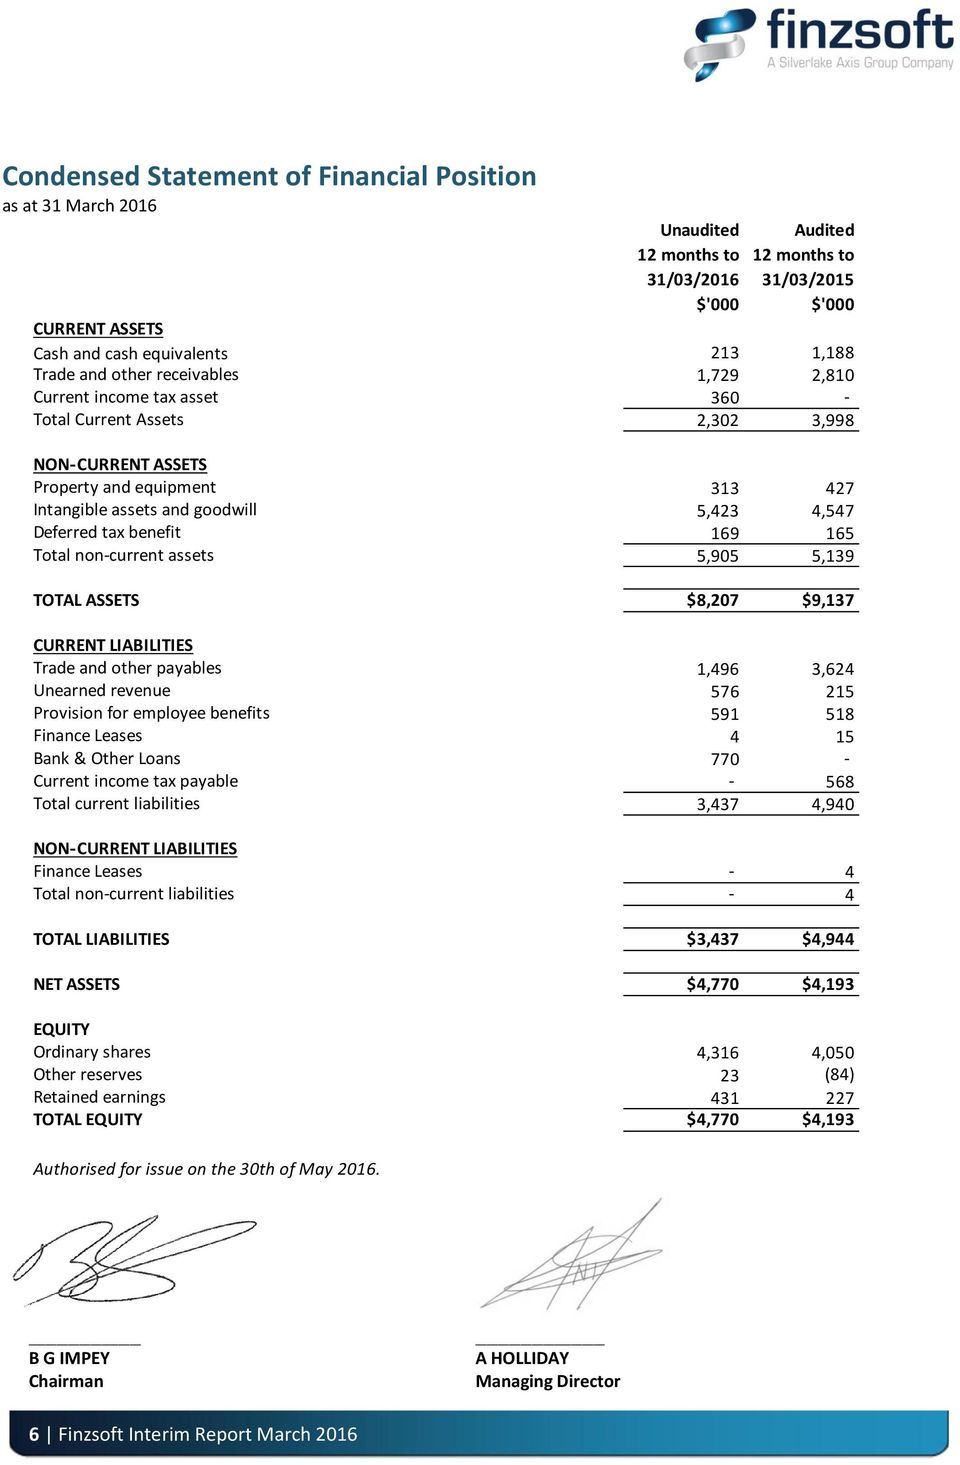 tax benefit 169 165 Total non-current assets 5,905 5,139 TOTAL ASSETS $8,207 $9,137 CURRENT LIABILITIES Trade and other payables 1,496 3,624 Unearned revenue 576 215 Provision for employee benefits